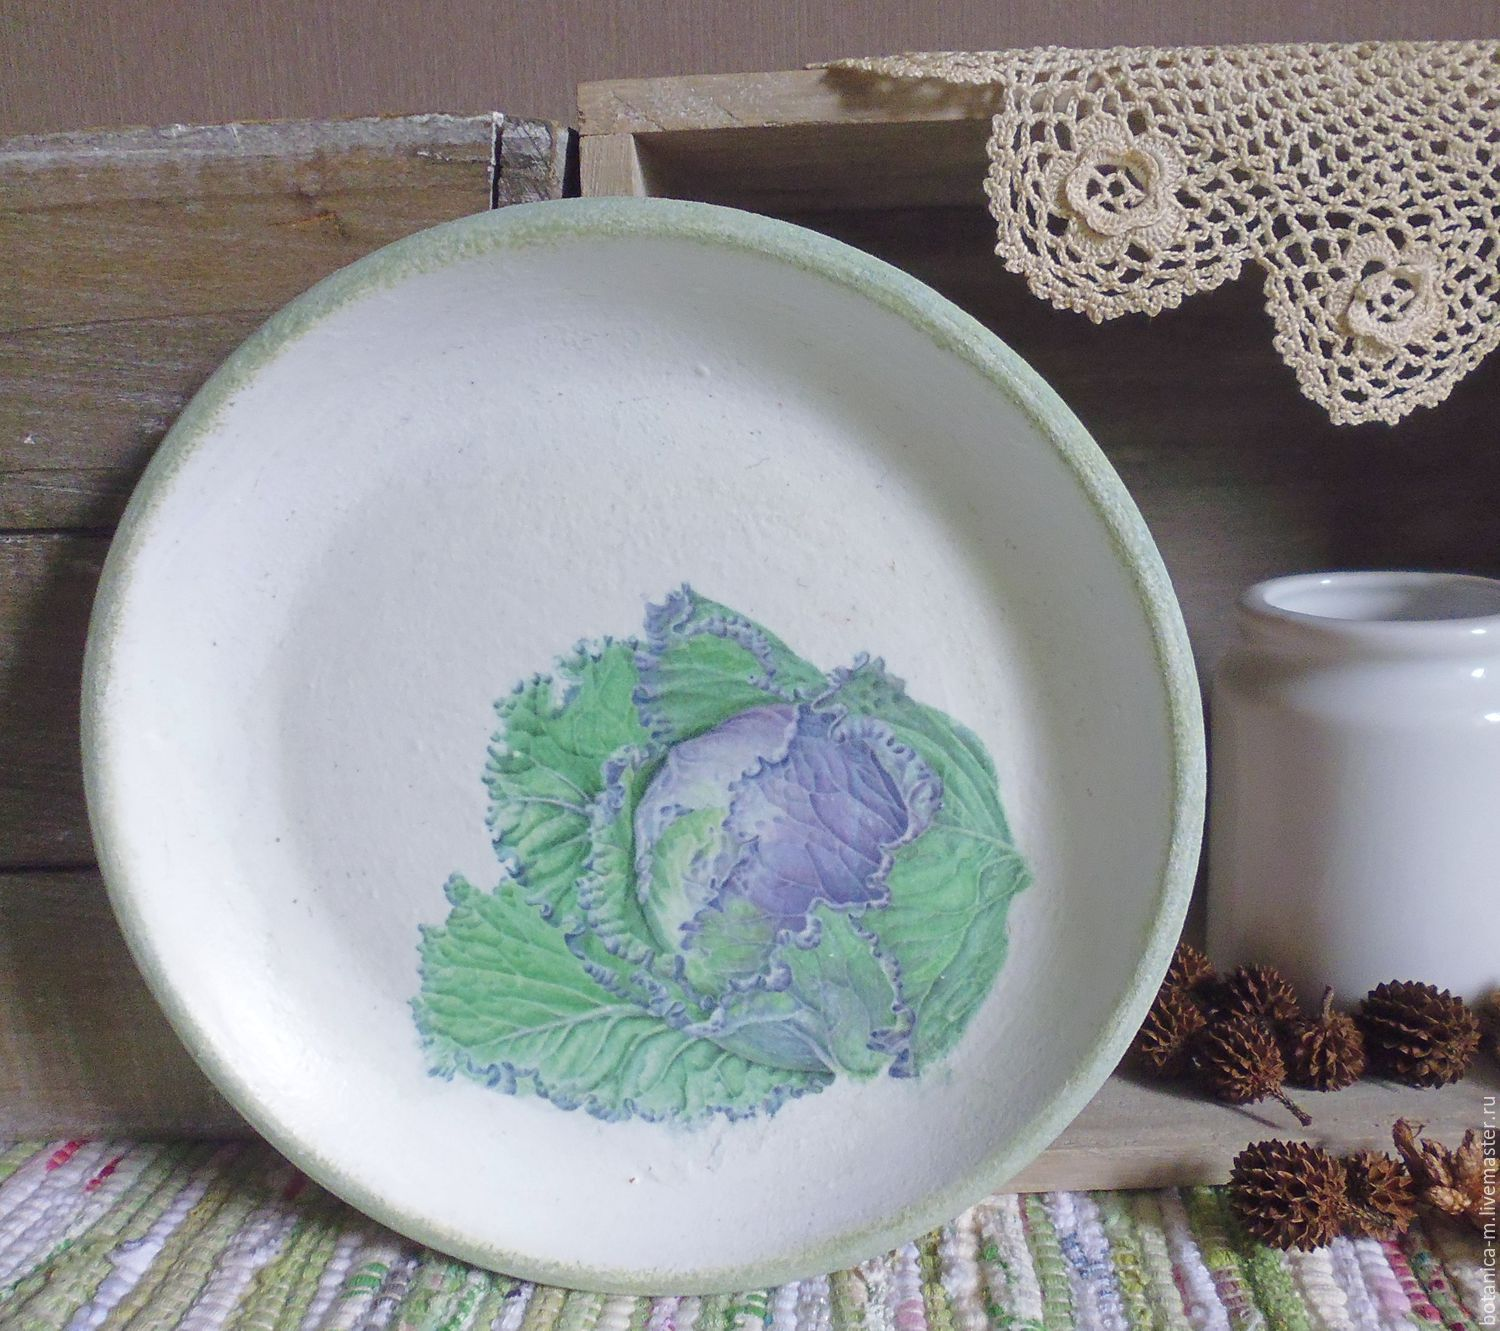 'cabbage' plate decorative country style, Plates, St. Petersburg,  Фото №1